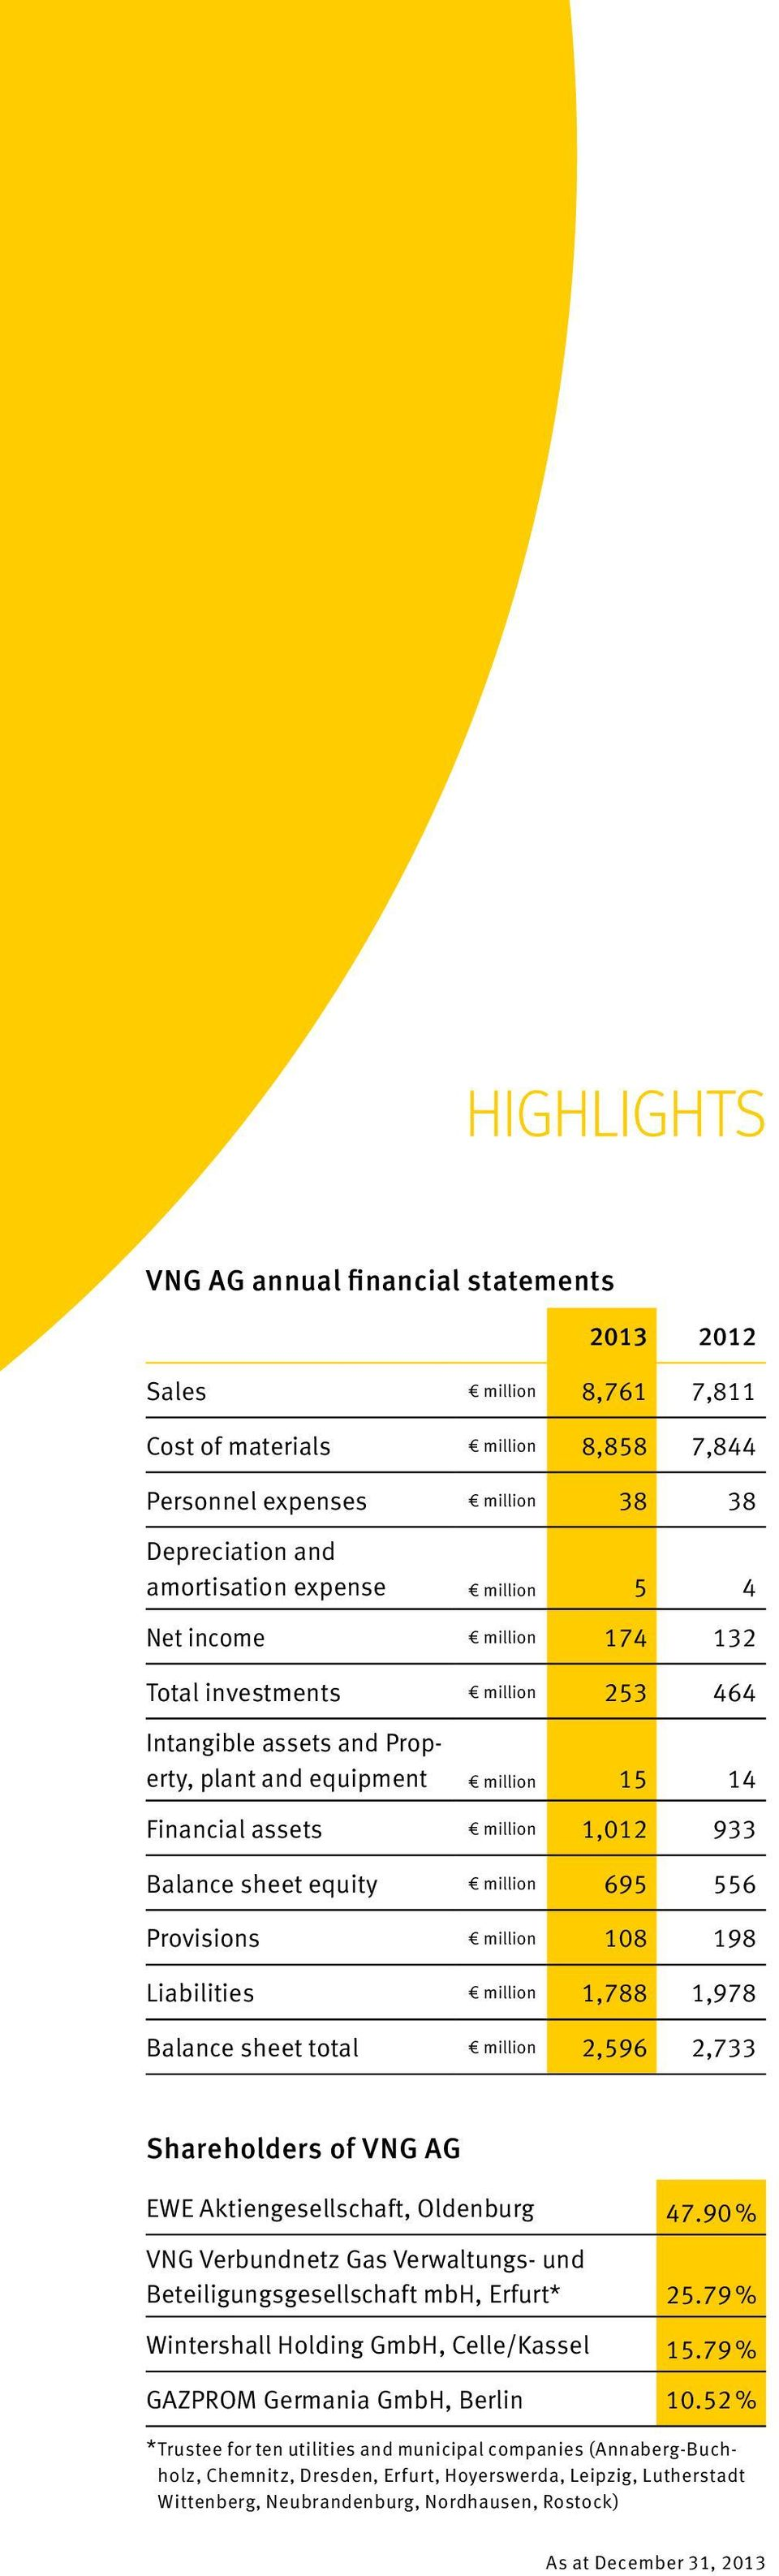 556 Provisions million 108 198 Liabilities million 1,788 1,978 Balance sheet total million 2,596 2,733 Shareholders of VNG AG EWE Aktiengesellschaft, Oldenburg 47.